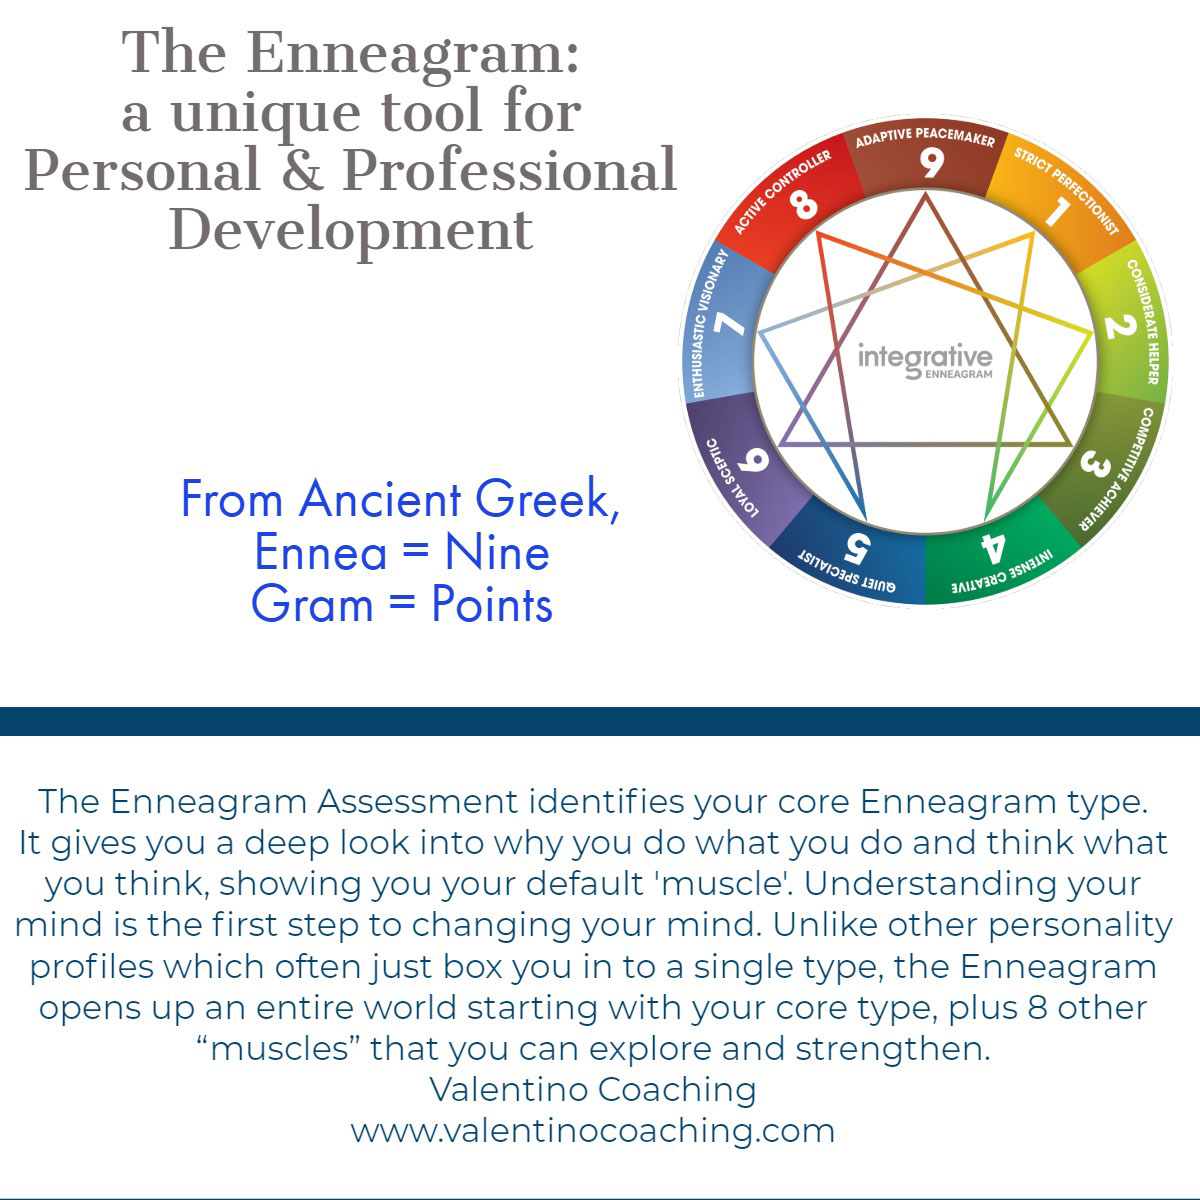 "The Enneagram Assessment identifies your core Enneagram type. It gives you a deep look into why you do what you do and think what you think, showing you your default 'muscle'. Understanding your mind is the first step to changing your mind. Unlike other personality profiles which often just box you in to a single type, the Enneagram opens up an entire world starting with your core type, plus 8 other ""muscles"" that you can explore and strengthen.<BR>Valentino Coaching<BR>www.valentinocoaching.com The Enneagram Assessment identifies your core Enneagram type. It gives you a deep look into why you do what you do and think what you think, showing you your default 'muscle'. Understanding your mind is the first step to changing your mind. Unlike other personality profiles which often just box you in to a single type, the Enneagram opens up an entire world starting with your core type, plus 8 other ""muscles"" that you can explore and strengthen.<BR>Valentino Coaching<BR>www.valentinocoaching.com<P>The Enneagram: a unique tool for Personal & Professional Development<P>From Ancient Greek,<BR>Ennea = Nine<BR>Gram = Points"